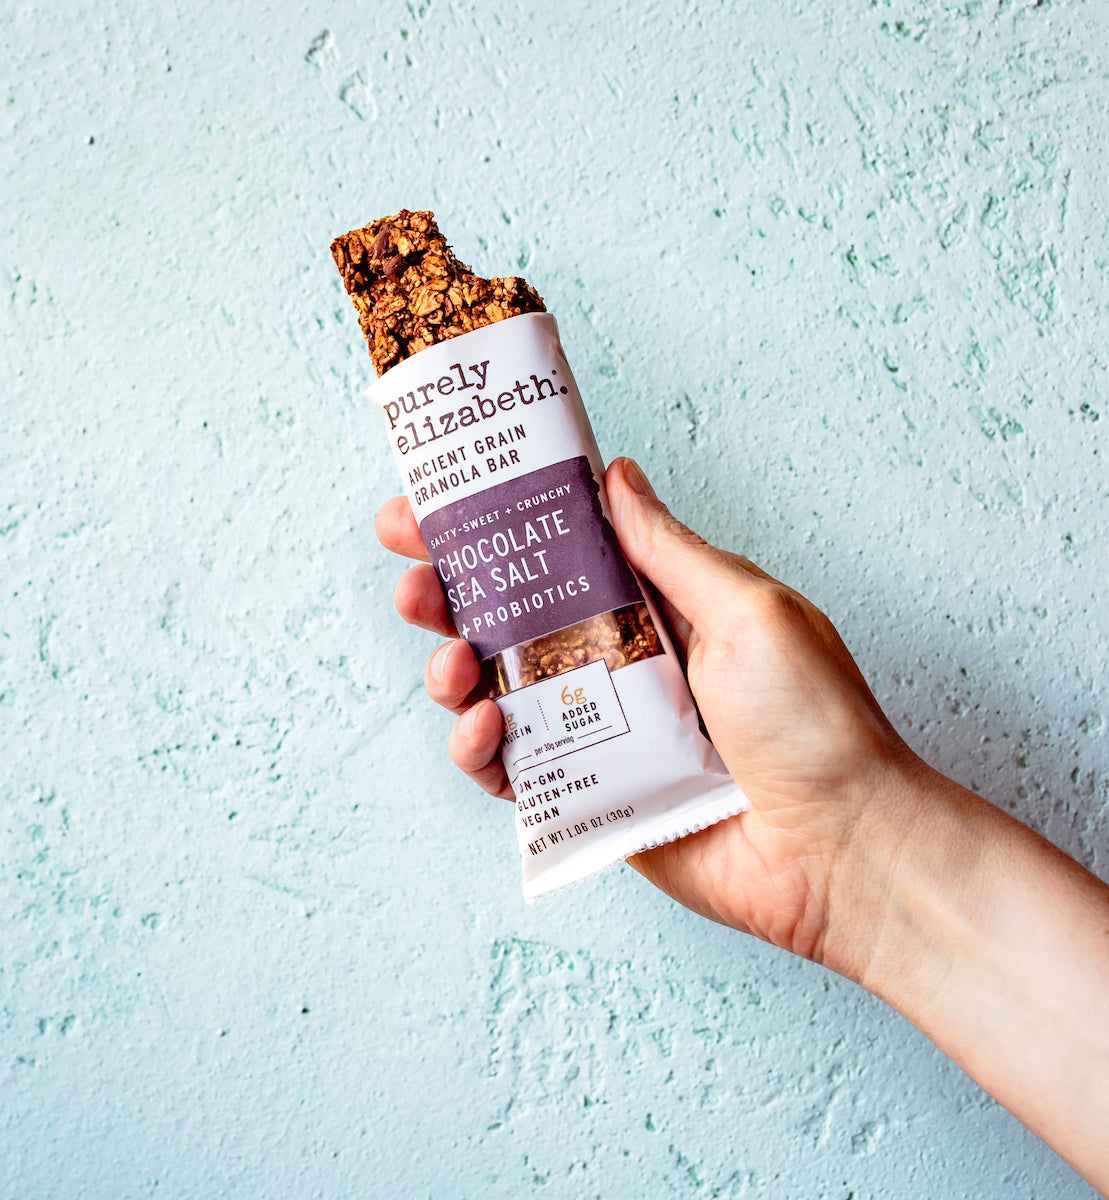 Chocolate Sea Salt Ancient Grain Granola Bars